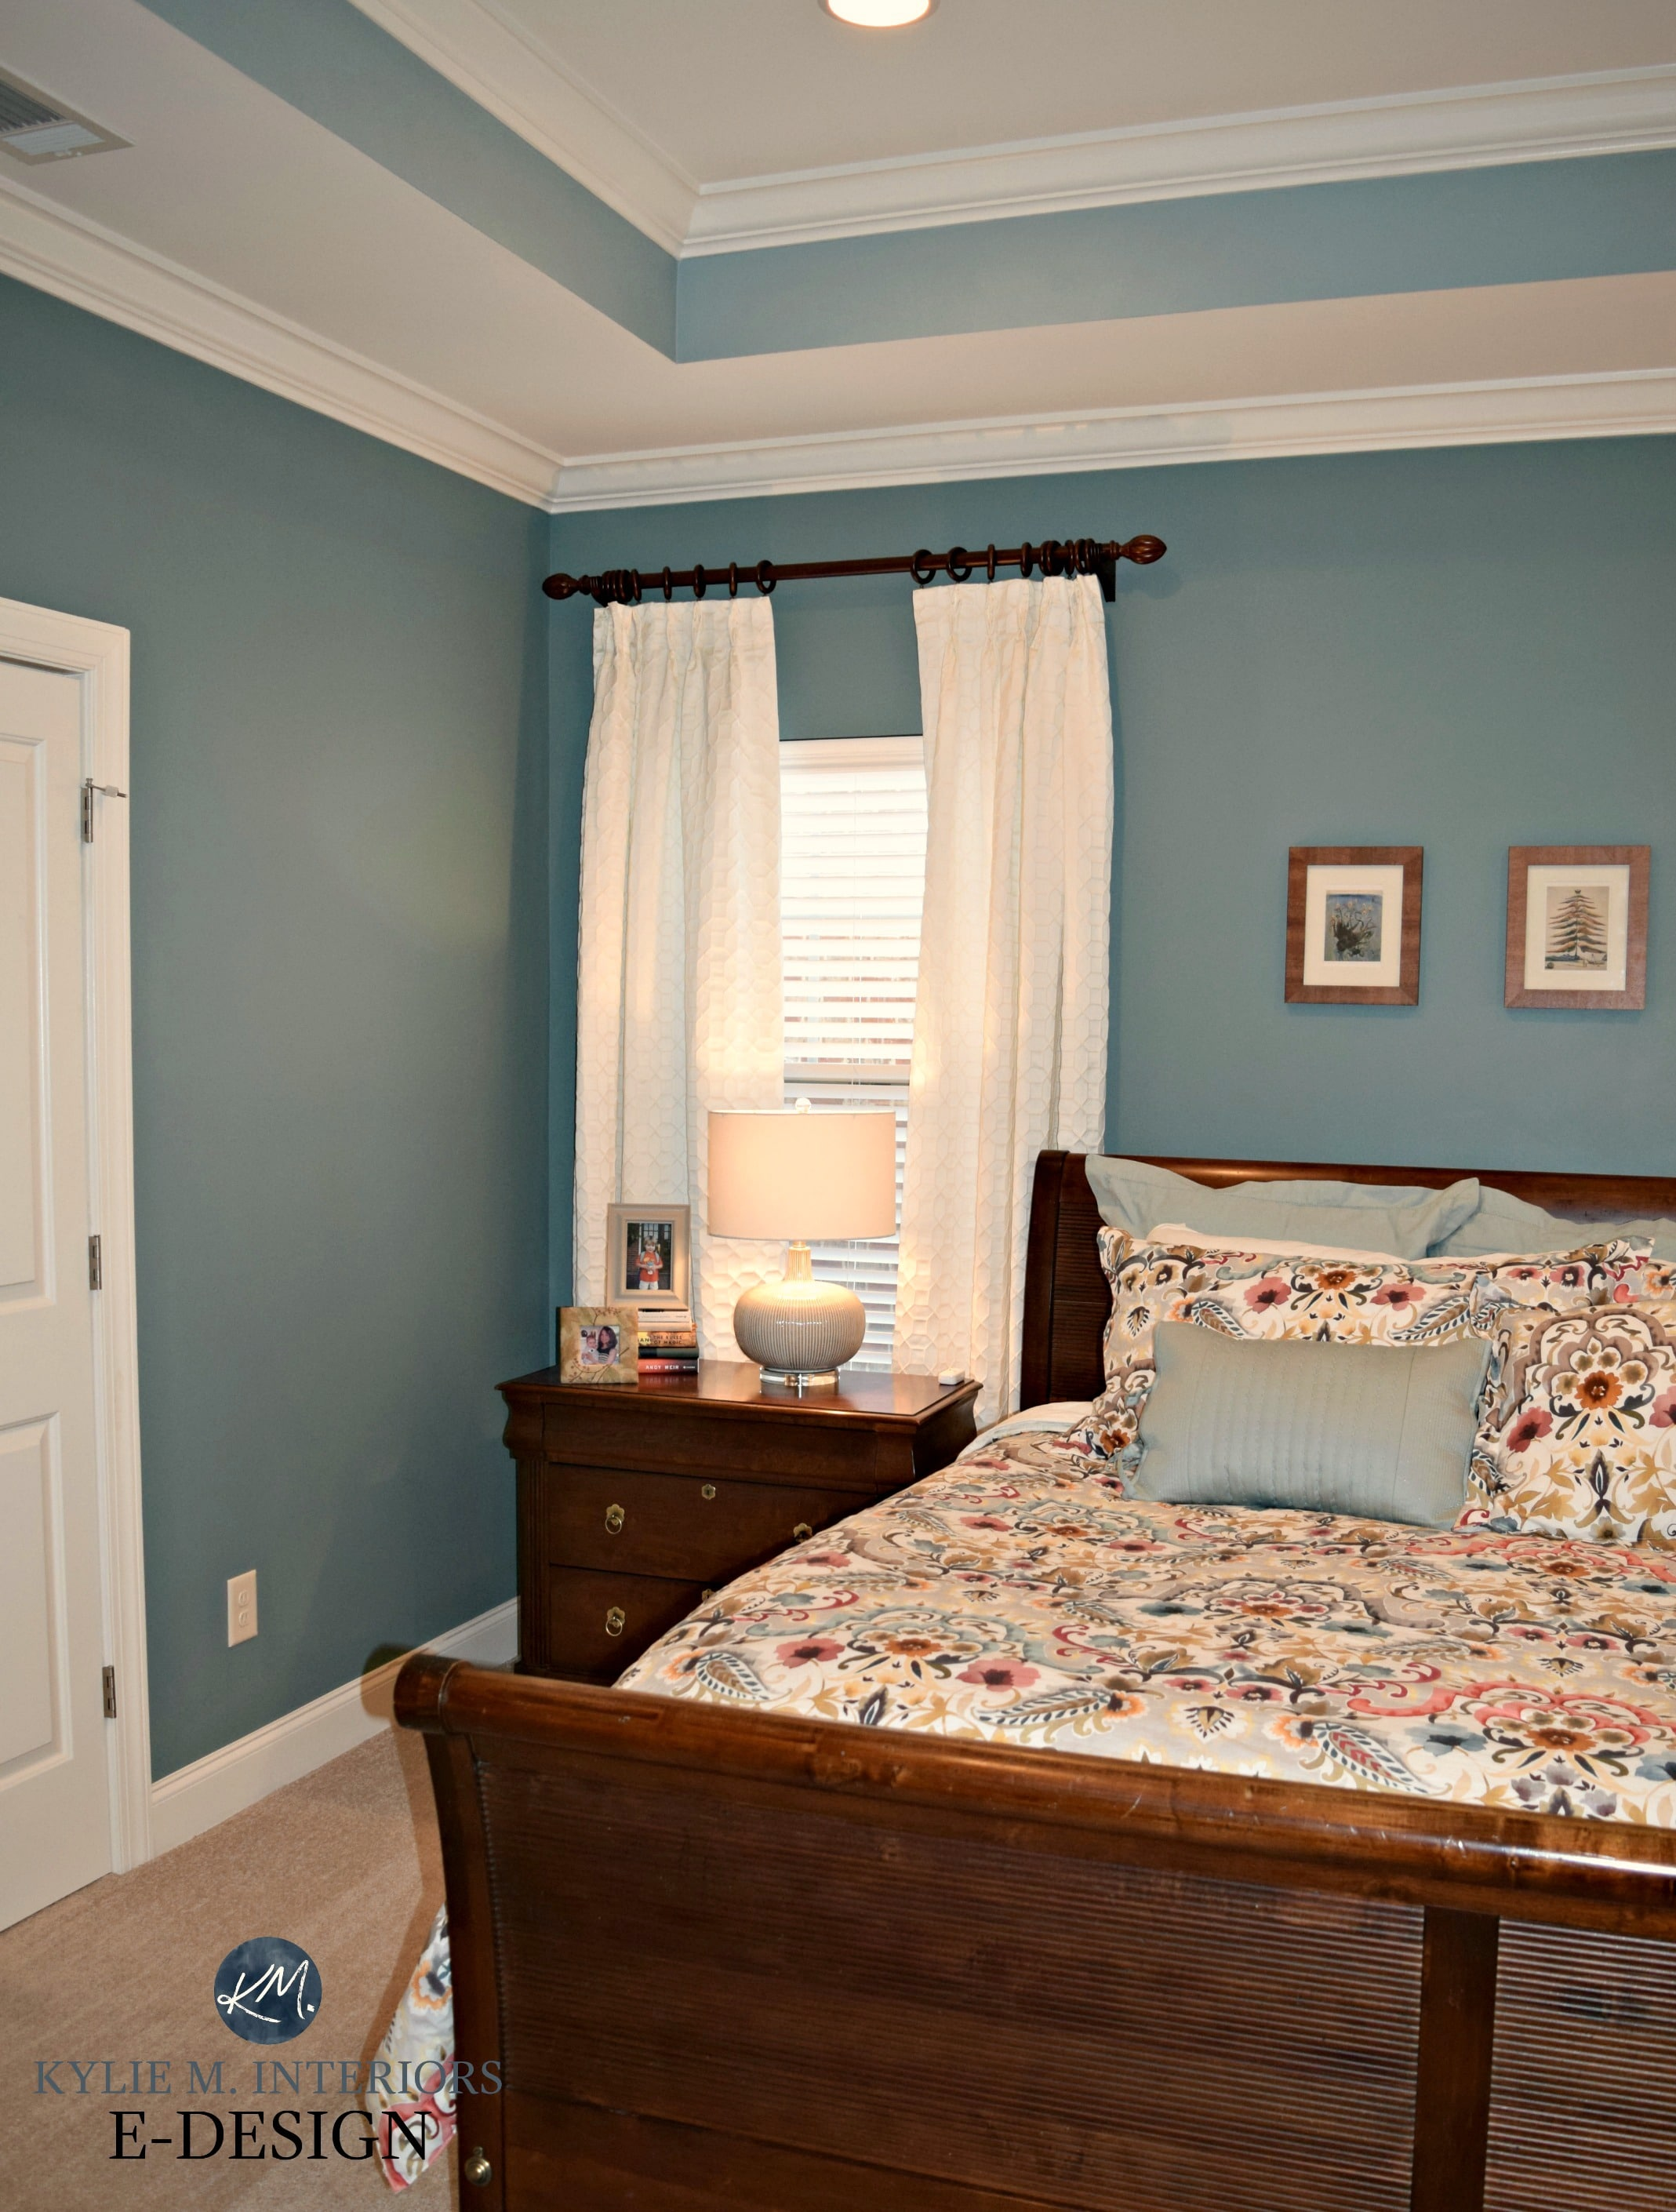 Interesting Living Room Paint Color Ideas: Kylie M E-design, Sherwin Williams Moody Blue And